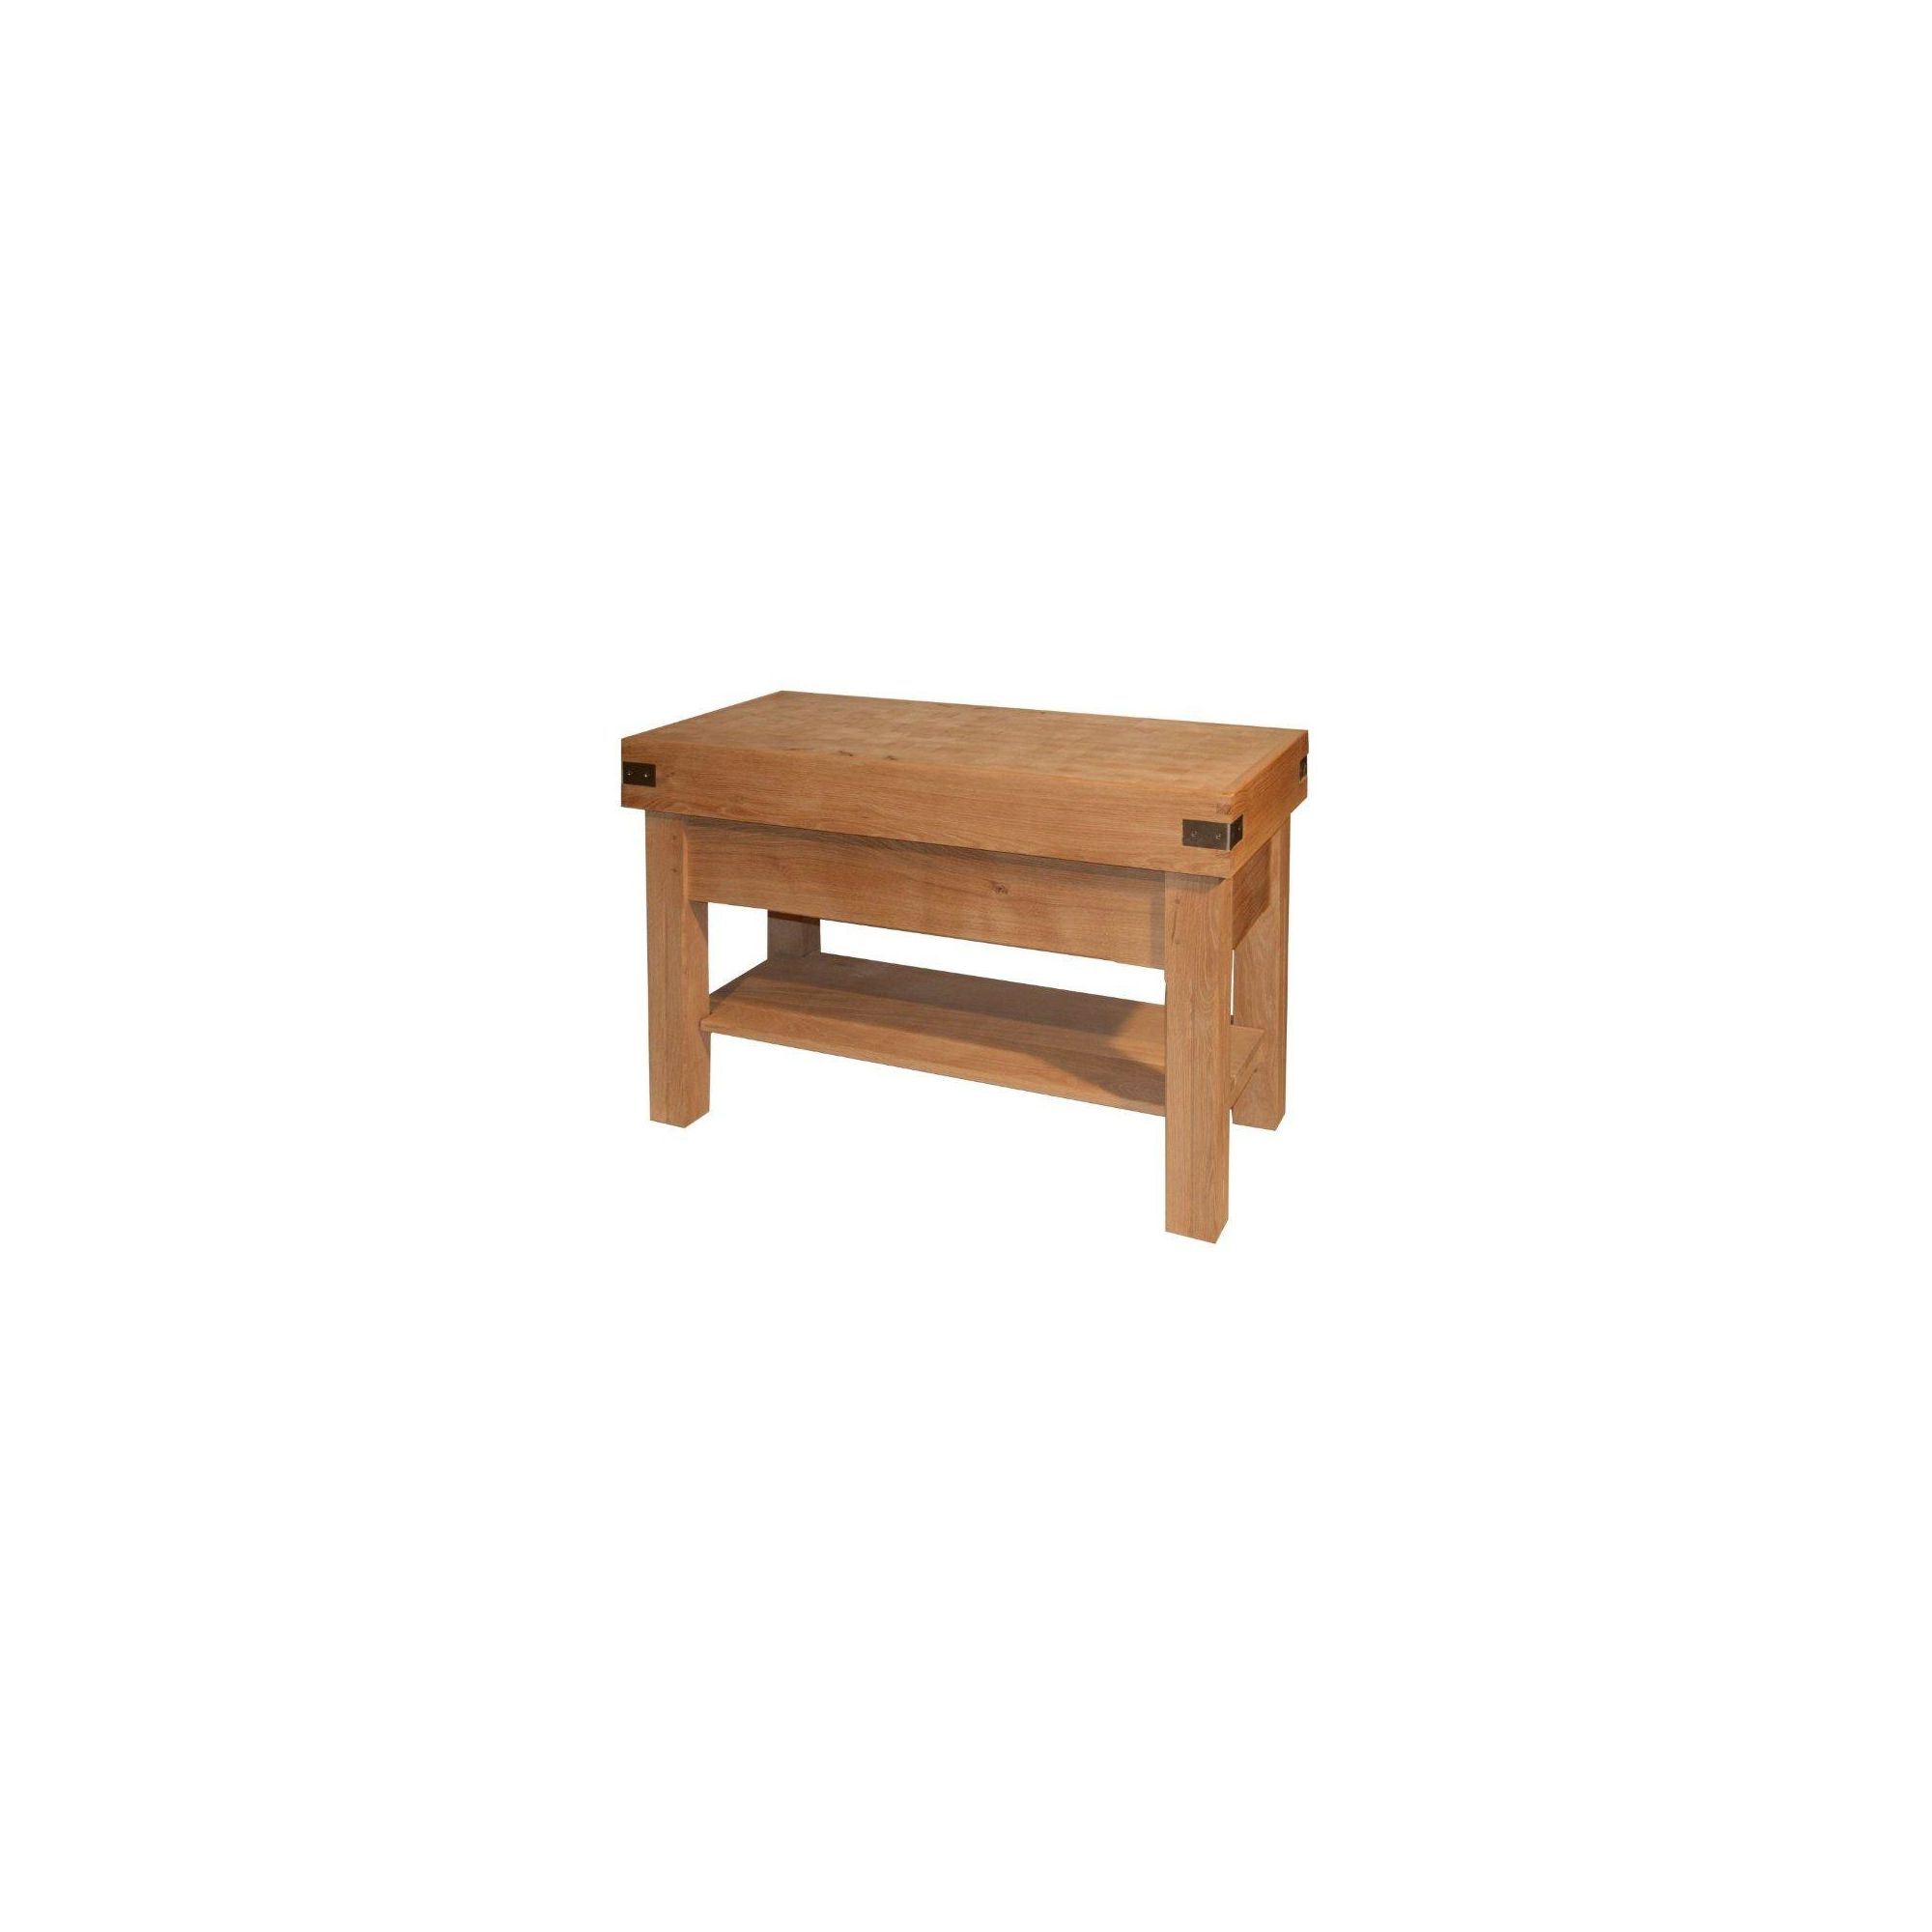 Chabret Traditional Kitchen Island Block - 90cm X 120cm X 60cm at Tesco Direct